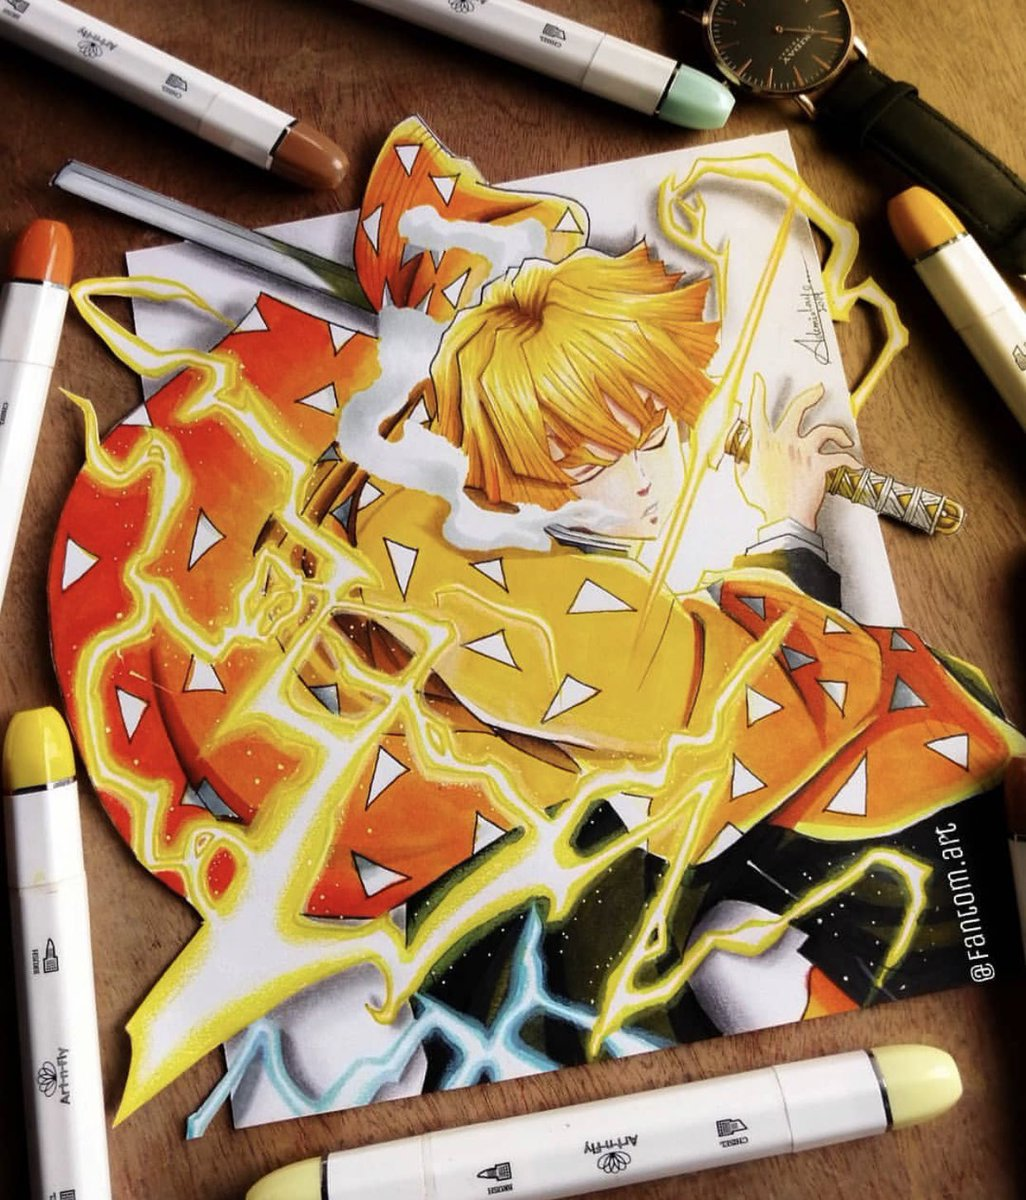 Alright this is the best Demon Slayer art ive ever seen <br>http://pic.twitter.com/dLZmdjSRfu